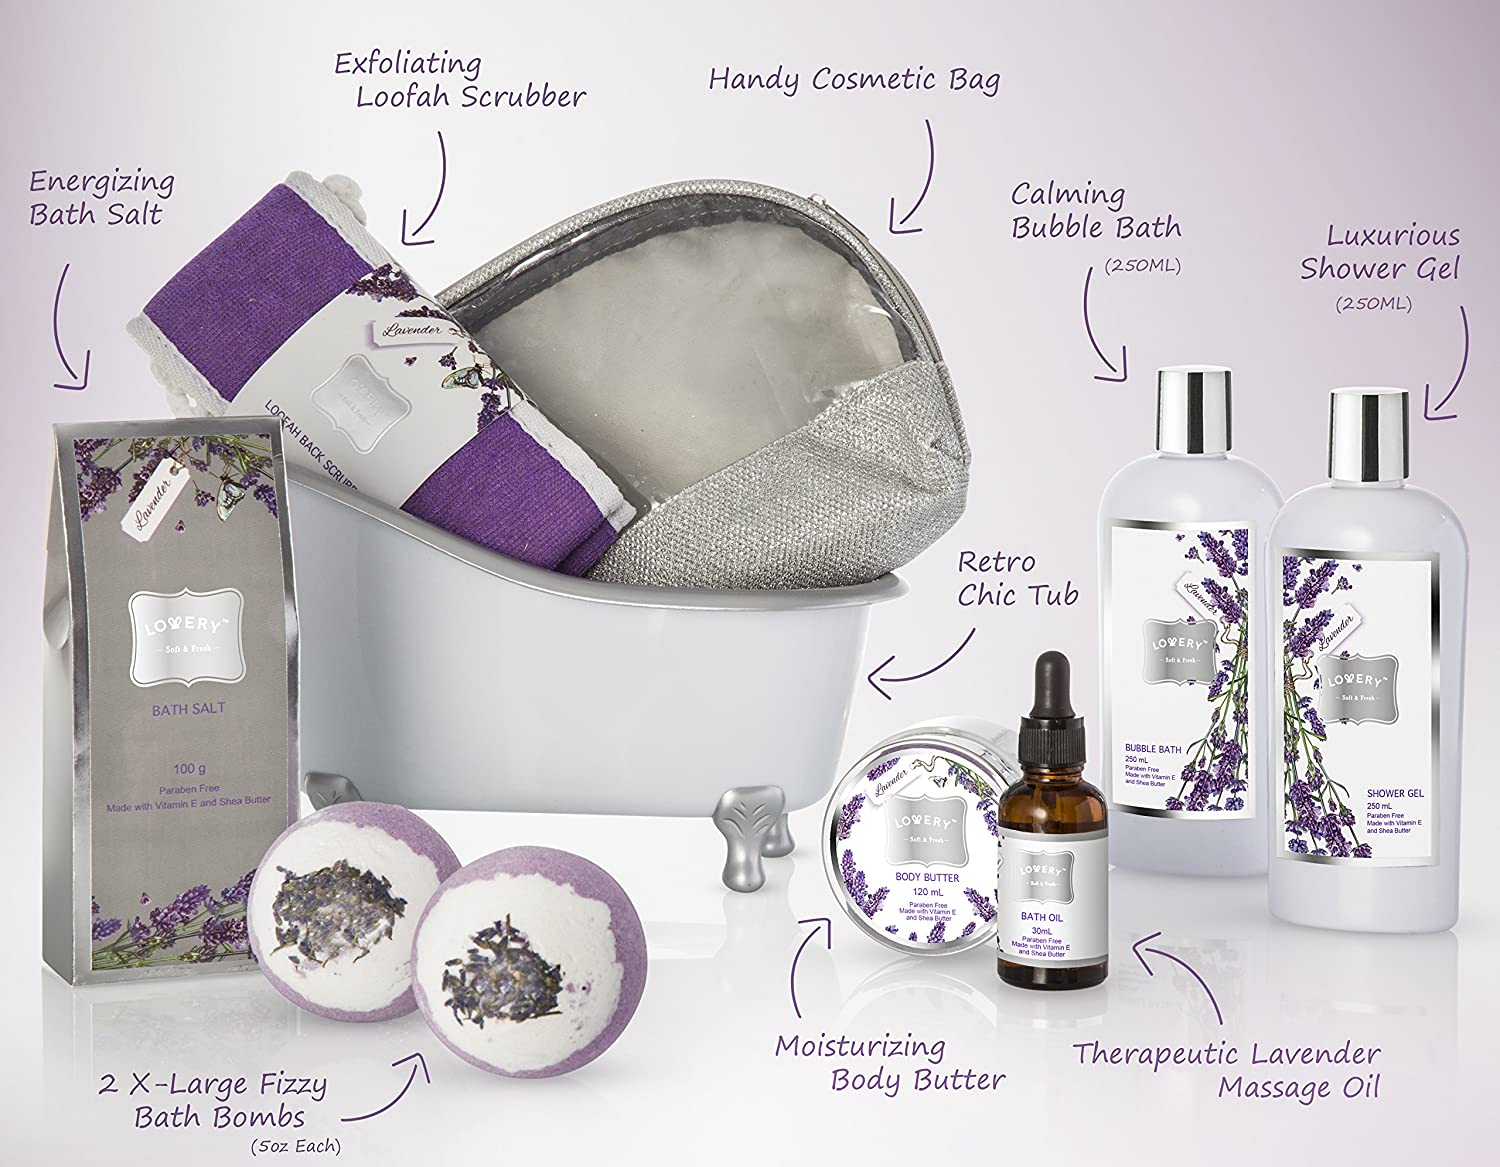 Bath Gift Basket Set for Women Relaxing at Home Spa Kit Scented with Lavender and Jasmine – Includes Large Bath Bombs, Salts, Shower Gel, Body Butter Lotion, Bath Oil, Bubble Bath, Loofah and More